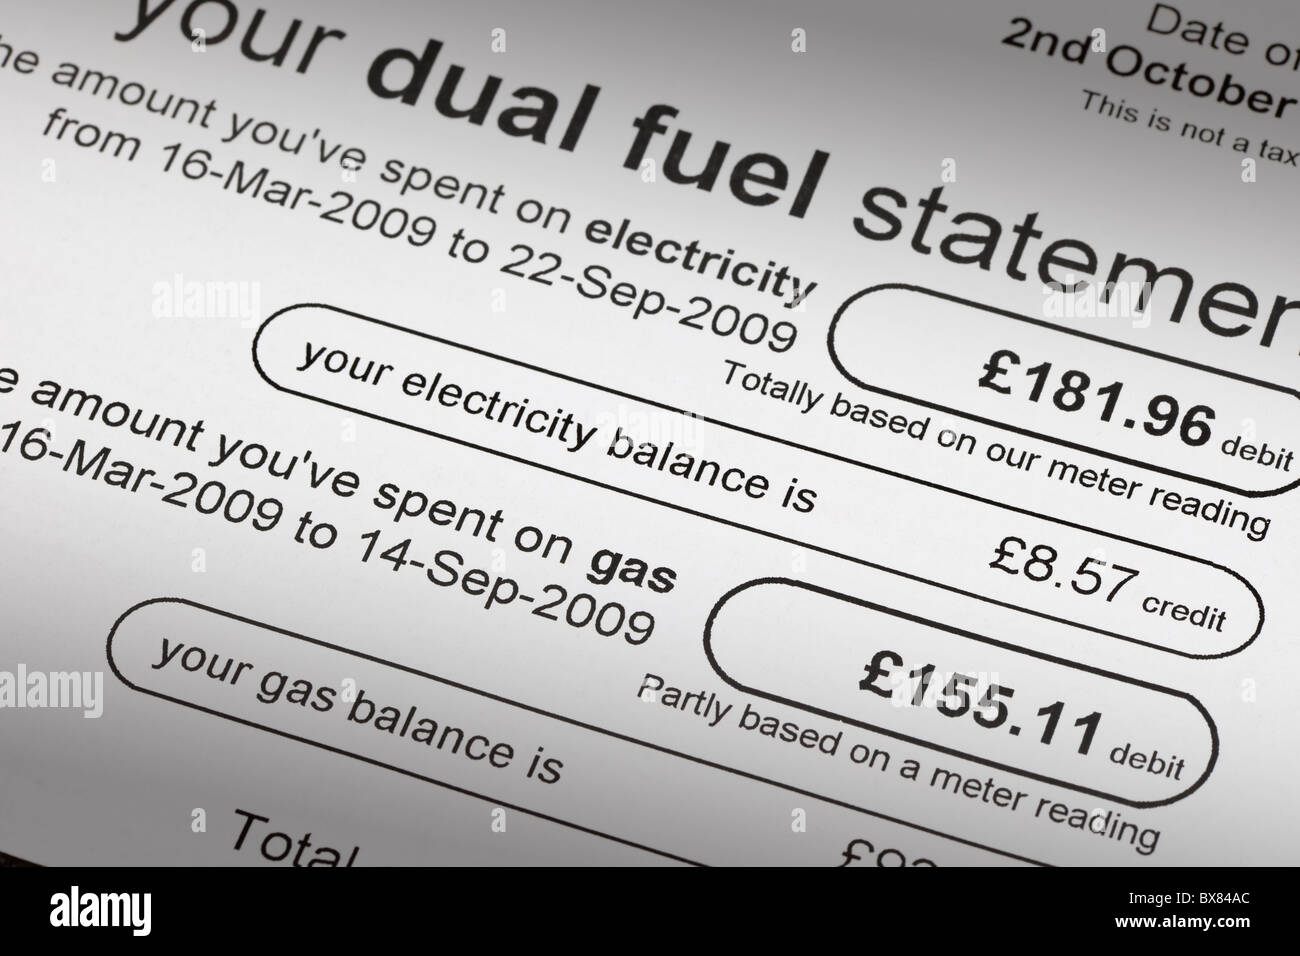 a uk gas and electricity bill - Stock Image